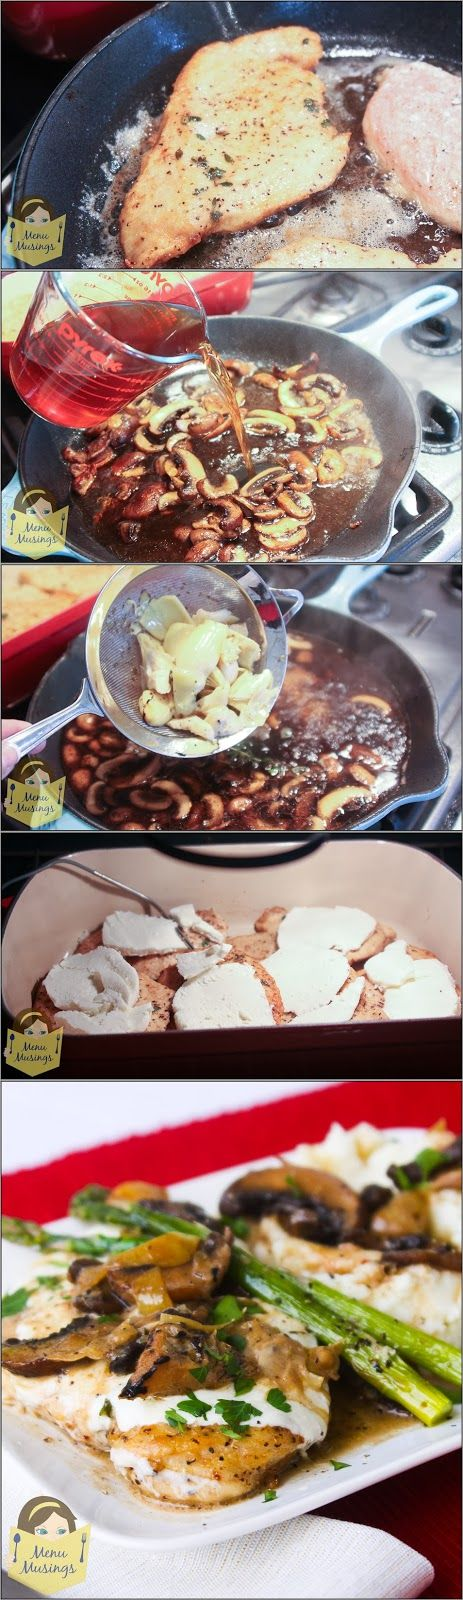 Family Style Chicken Madeira - with crimini mushrooms, artichoke hearts, and a delicious rich broth made of a reduction of broth, wine and herbs - oh MY!!! Step-by-step photo tutorial.